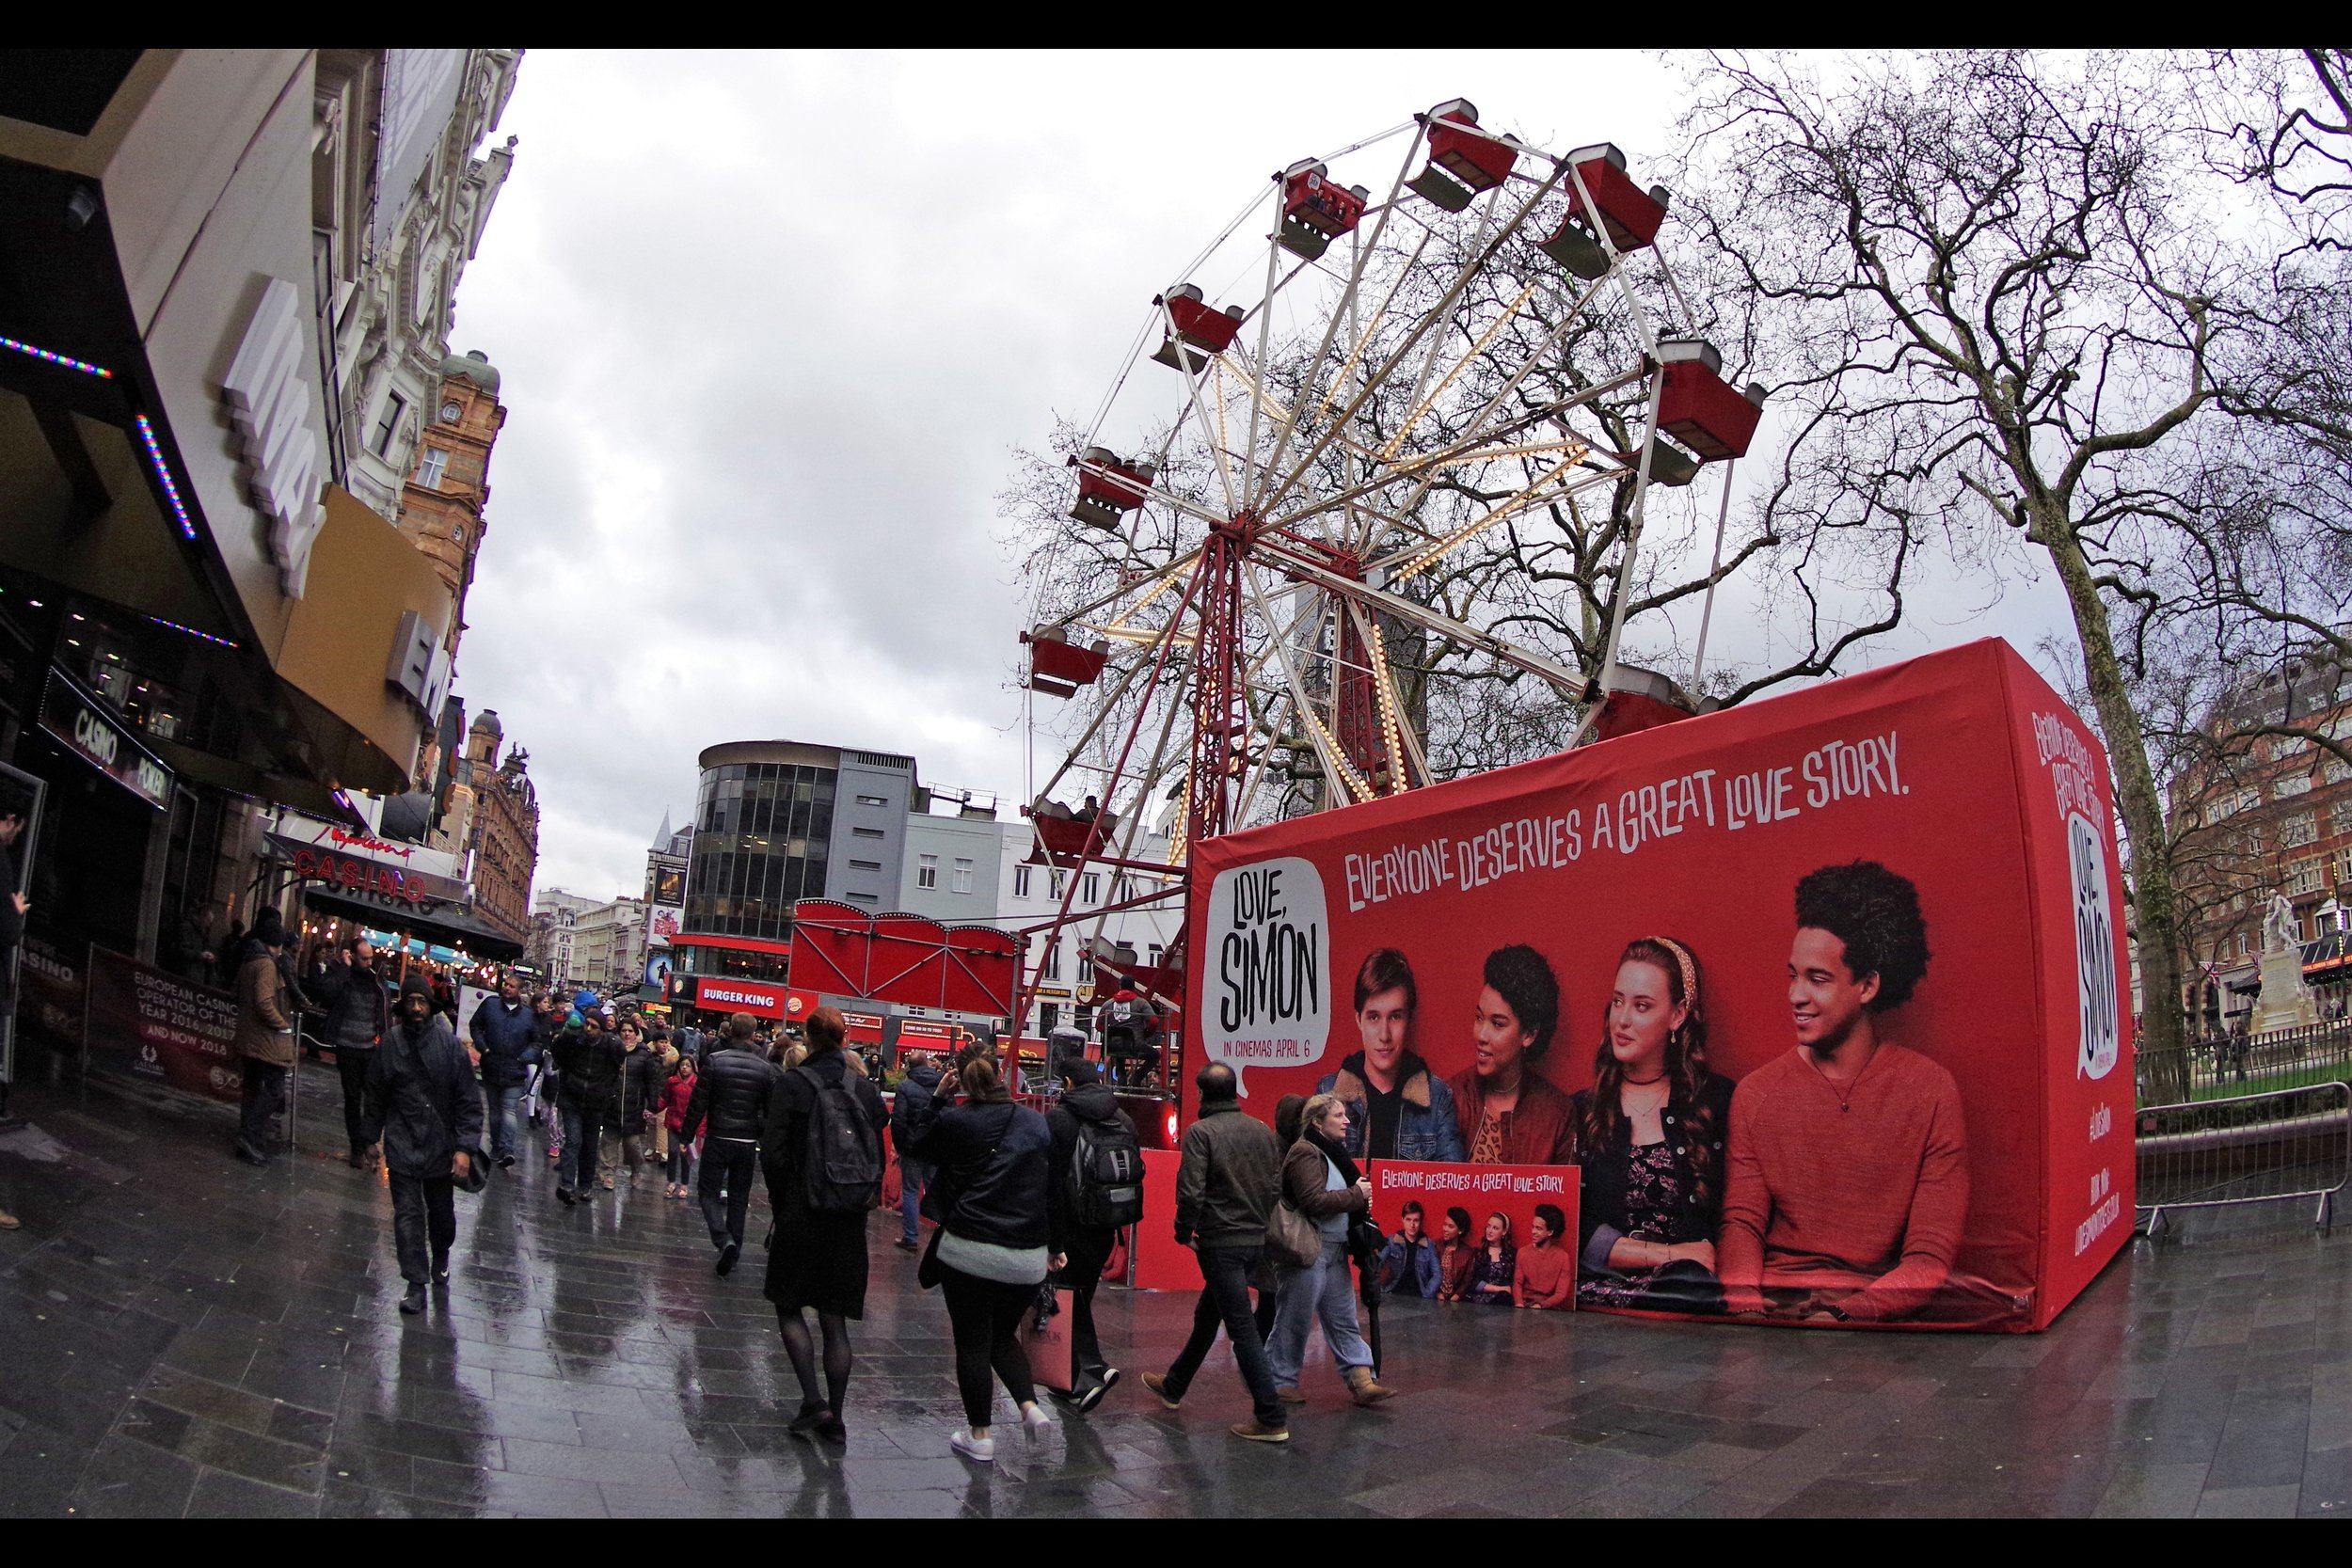 """I've always wondered what the lowest number out of a list of (1) Dealers, (2) Security, (3) Wristbands, (4) Stars, (5) Red Carpet, (6) Barriers and (7) Photographers could be present in order for something to be justifiably called a """"premiere"""". But I think a Ferris wheel can be a substitute for at least two of those things."""